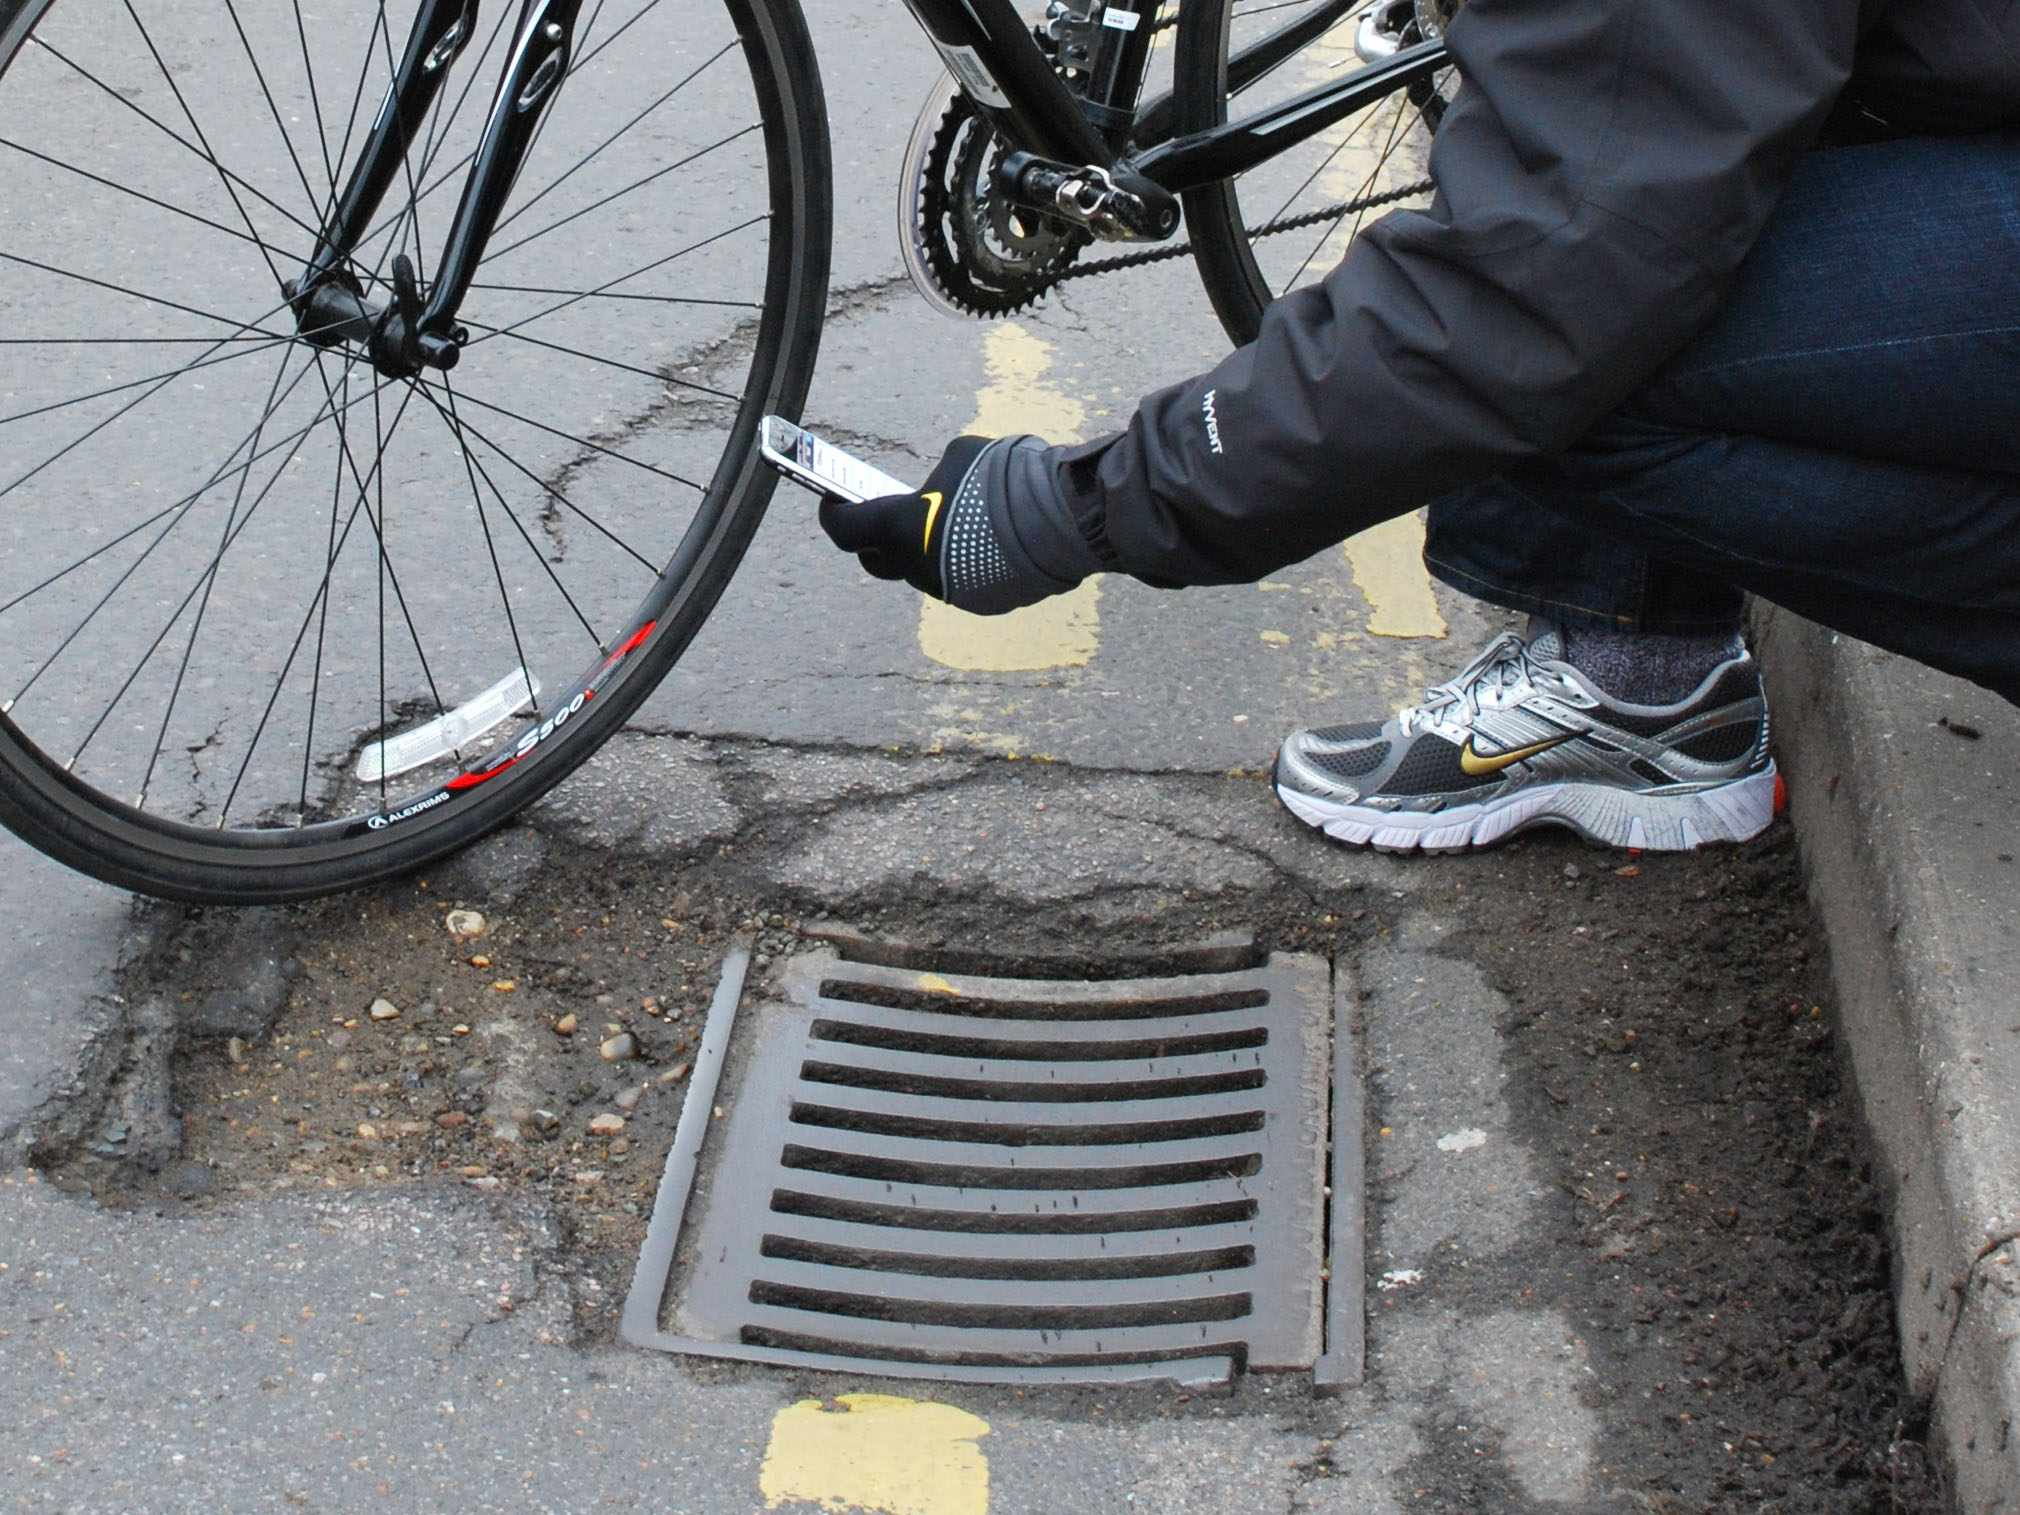 CTC reported 2,500 potholes last month alone